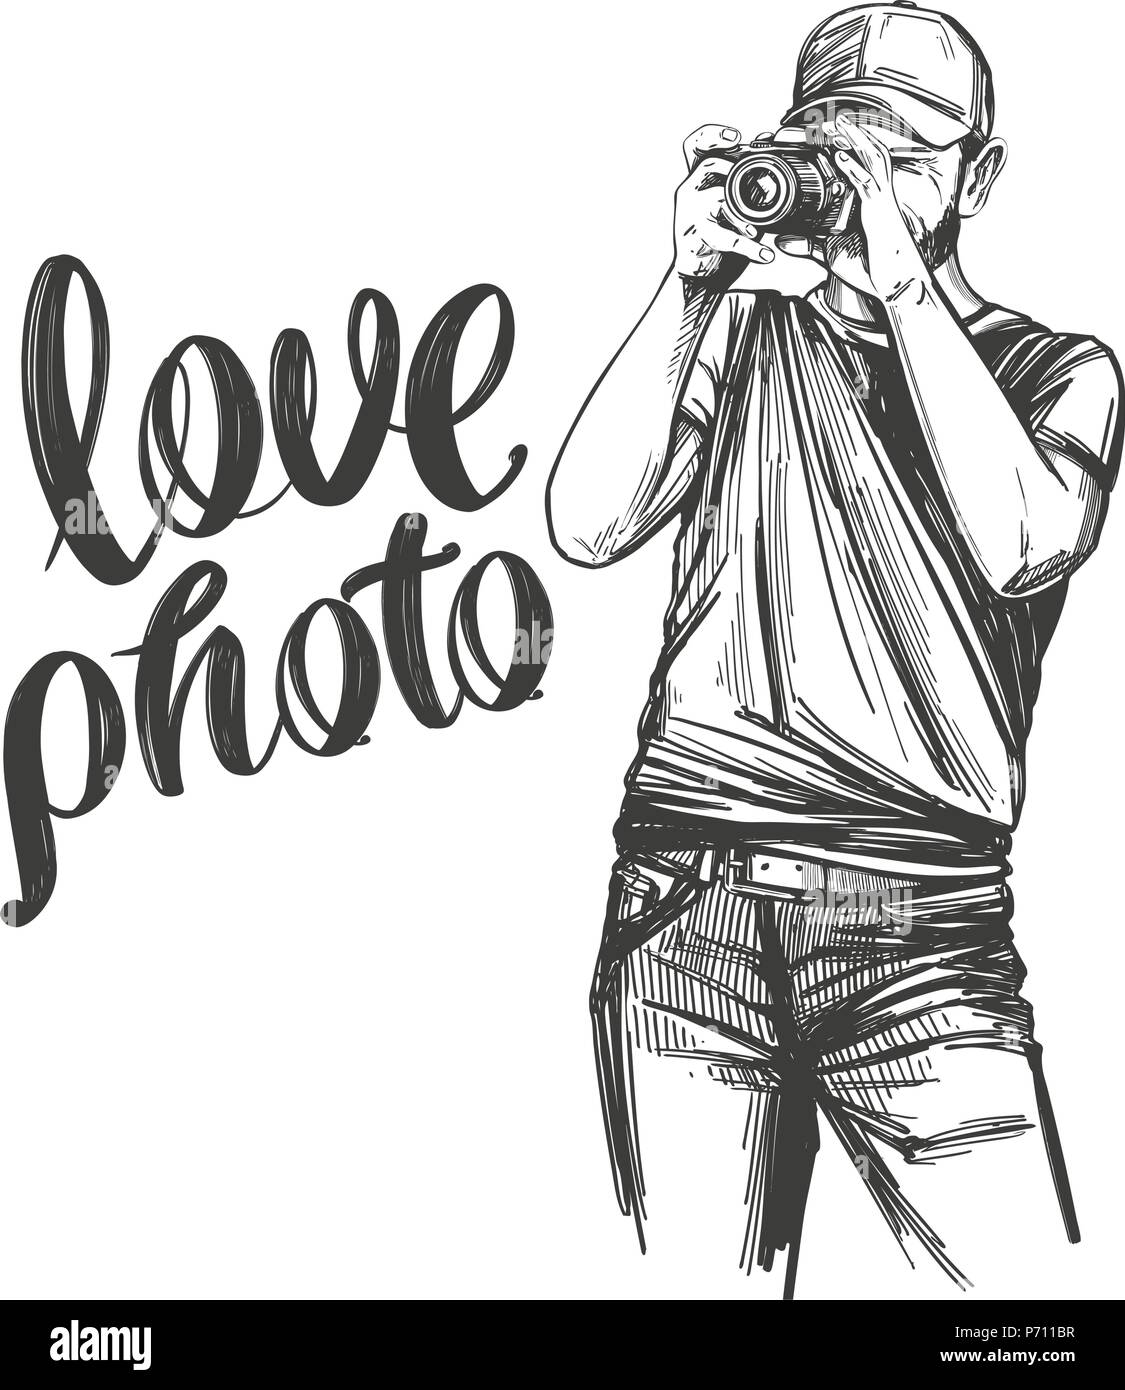 Photographer love photo calligraphy text hand drawn vector illustration realistic sketch